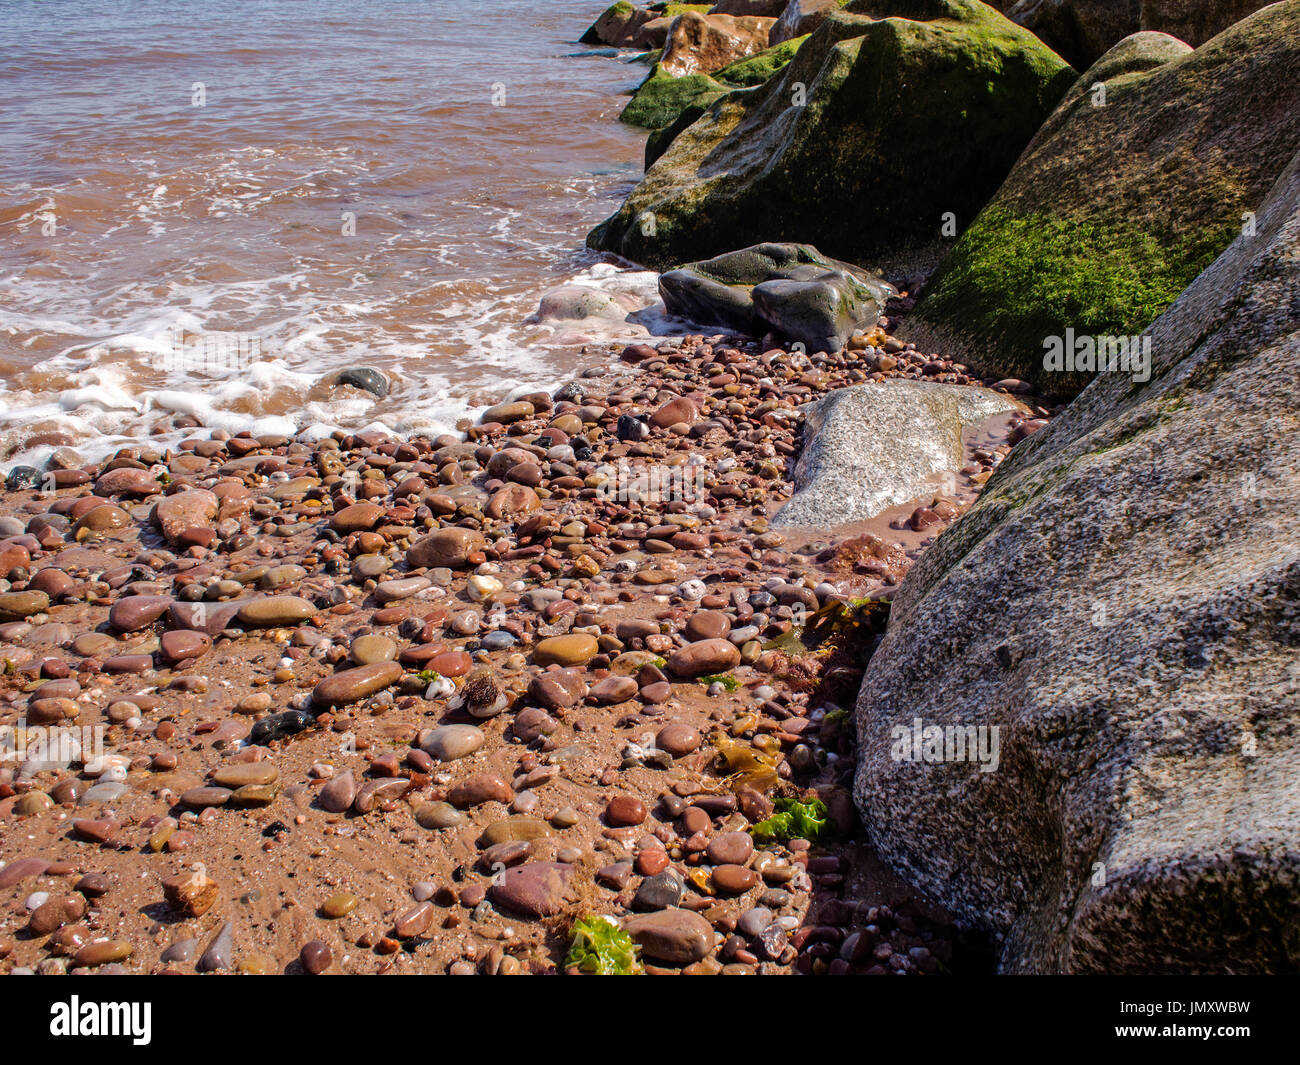 Water laps over smooth, rounded pebbles on a beach, showing gradation of deposits alongside a rock armour groyne. Stock Photo